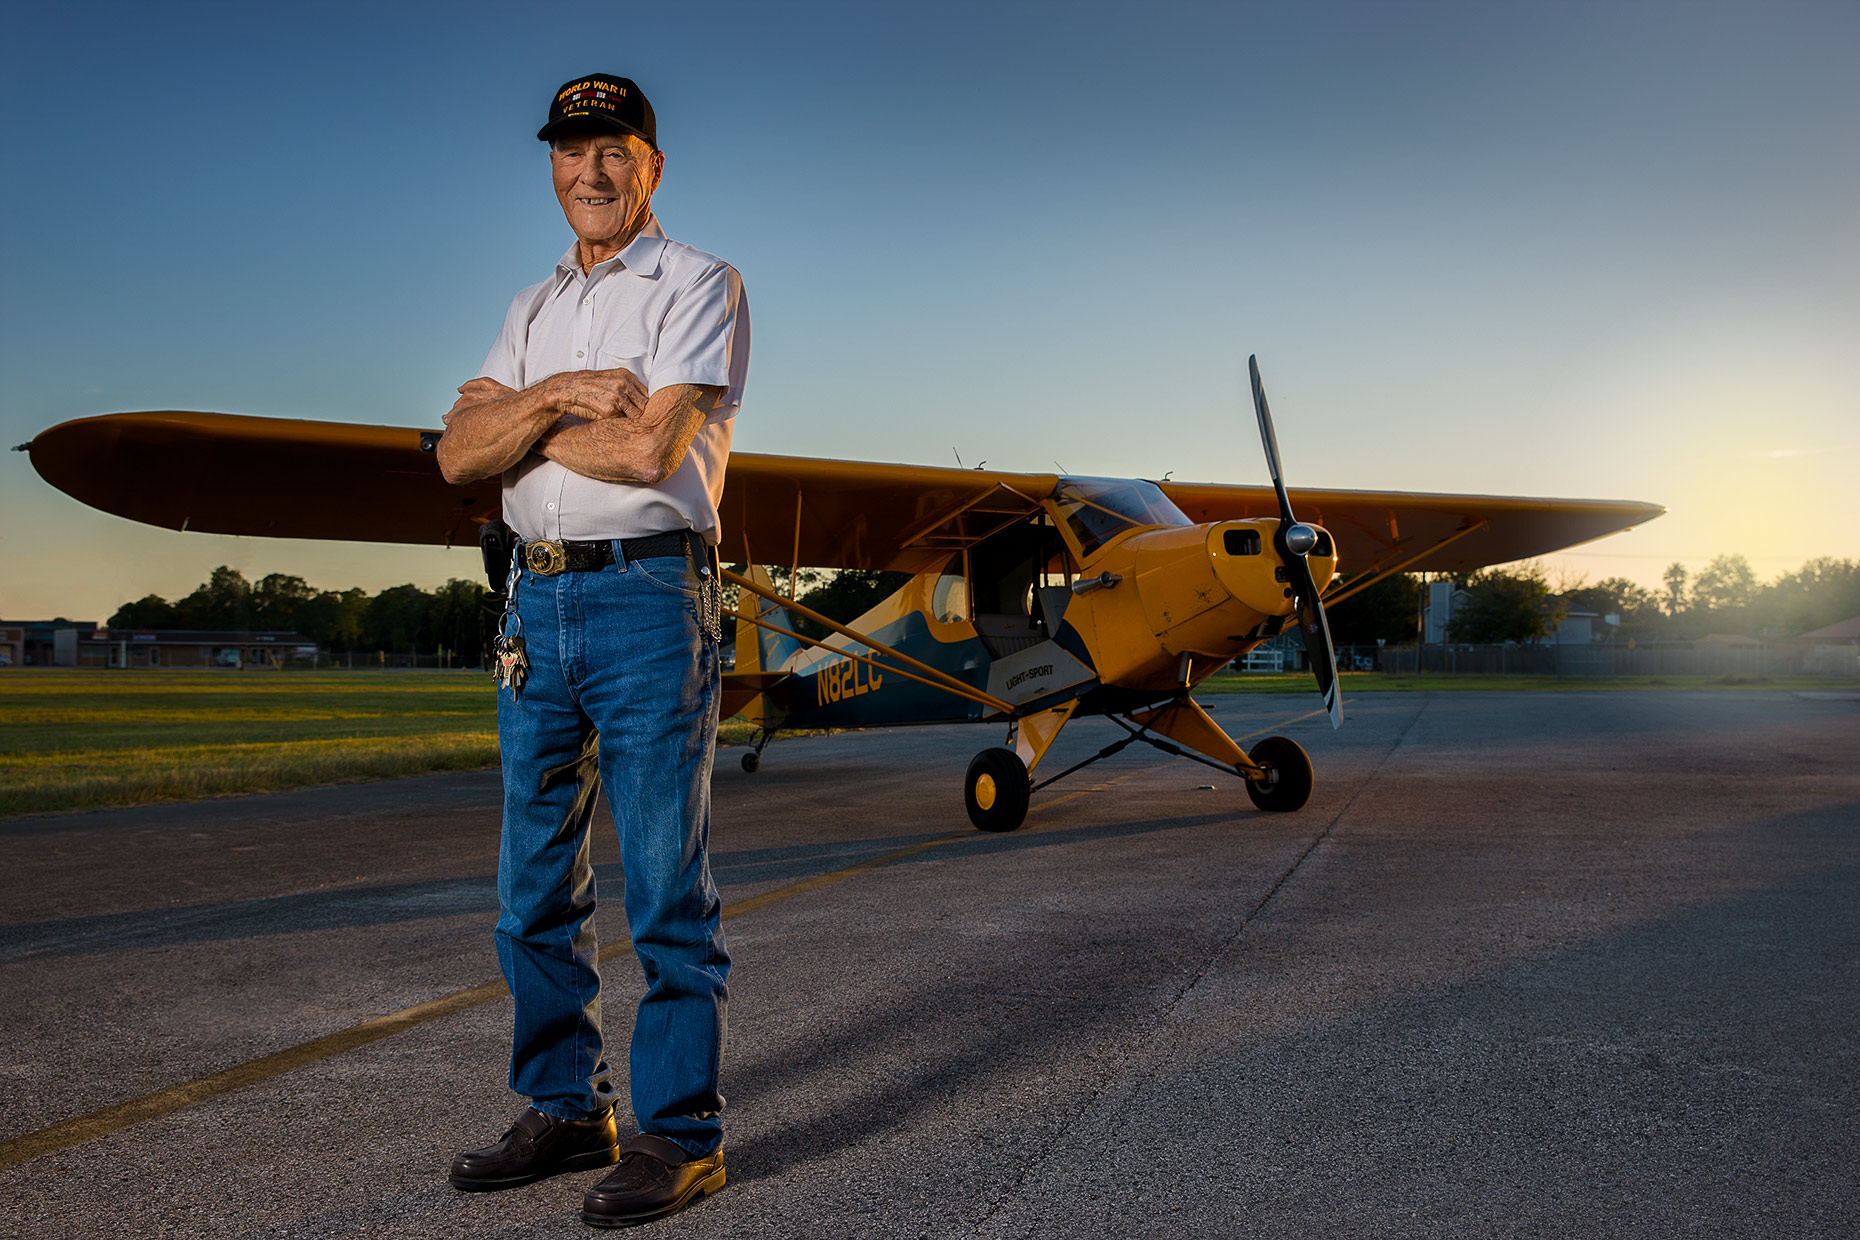 Gideon Jones, 92-Year Old USAF Veteran & Flight Instructor